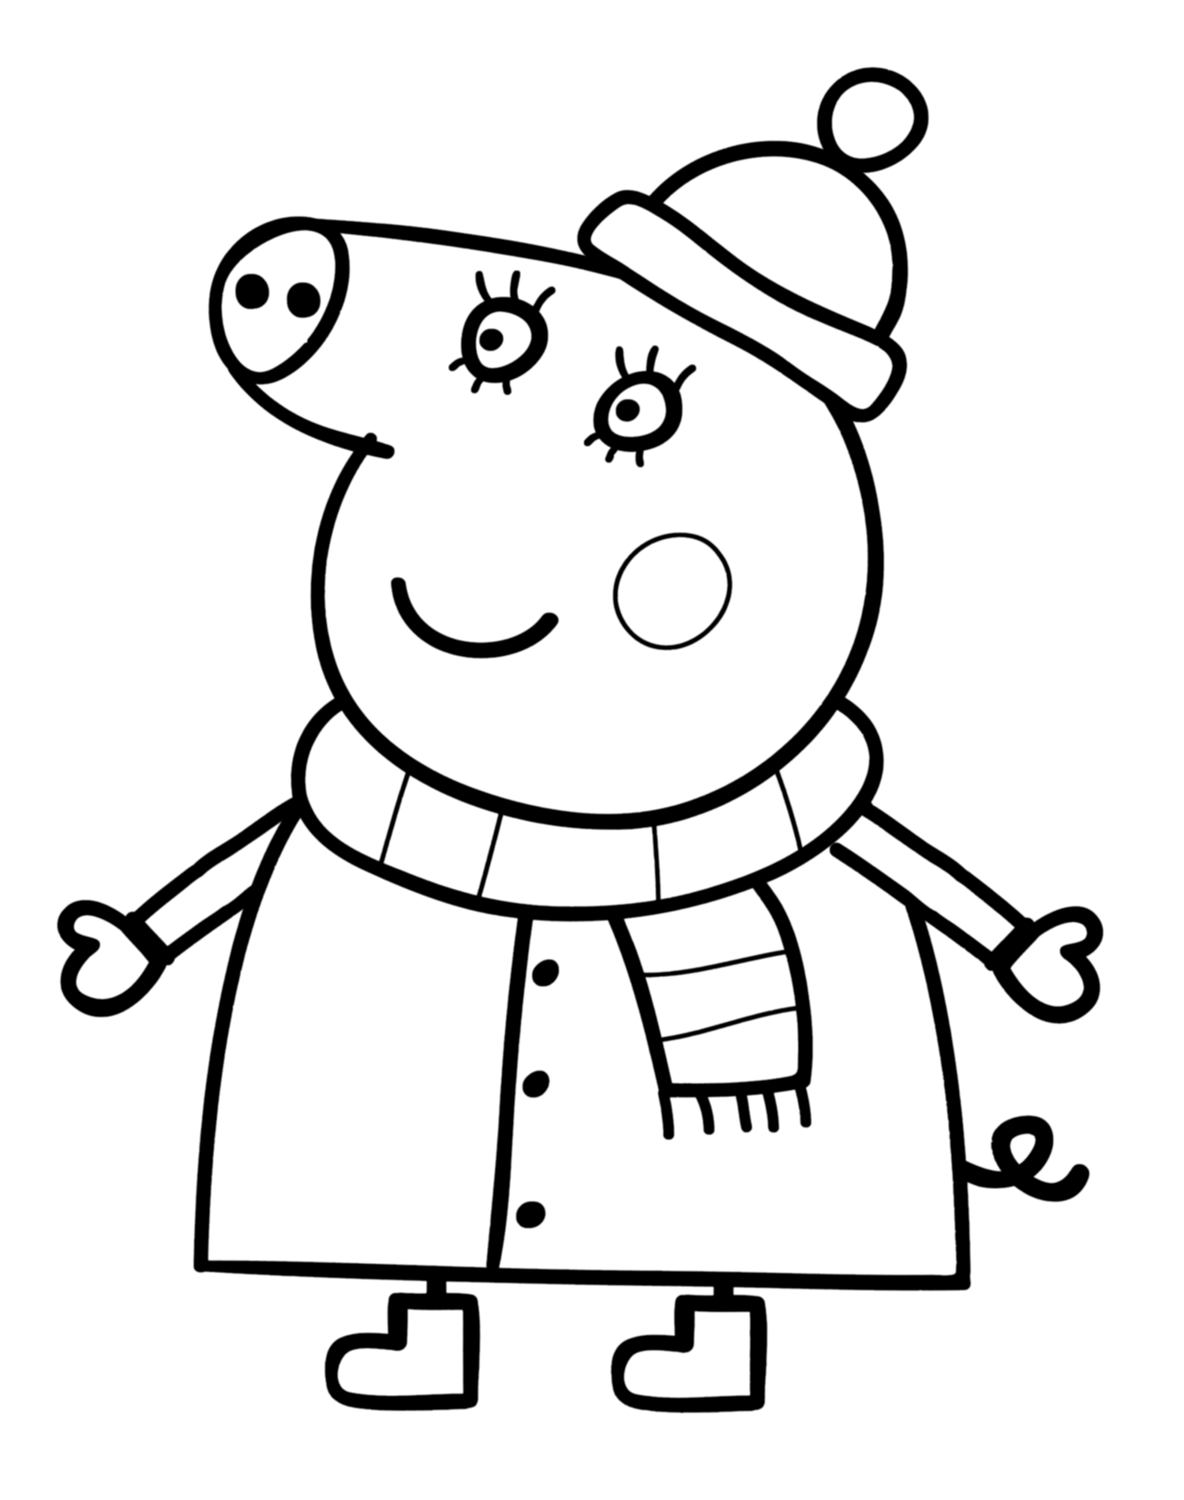 peppa pig color fun learn free worksheets for kid peppa pig coloring peppa color pig